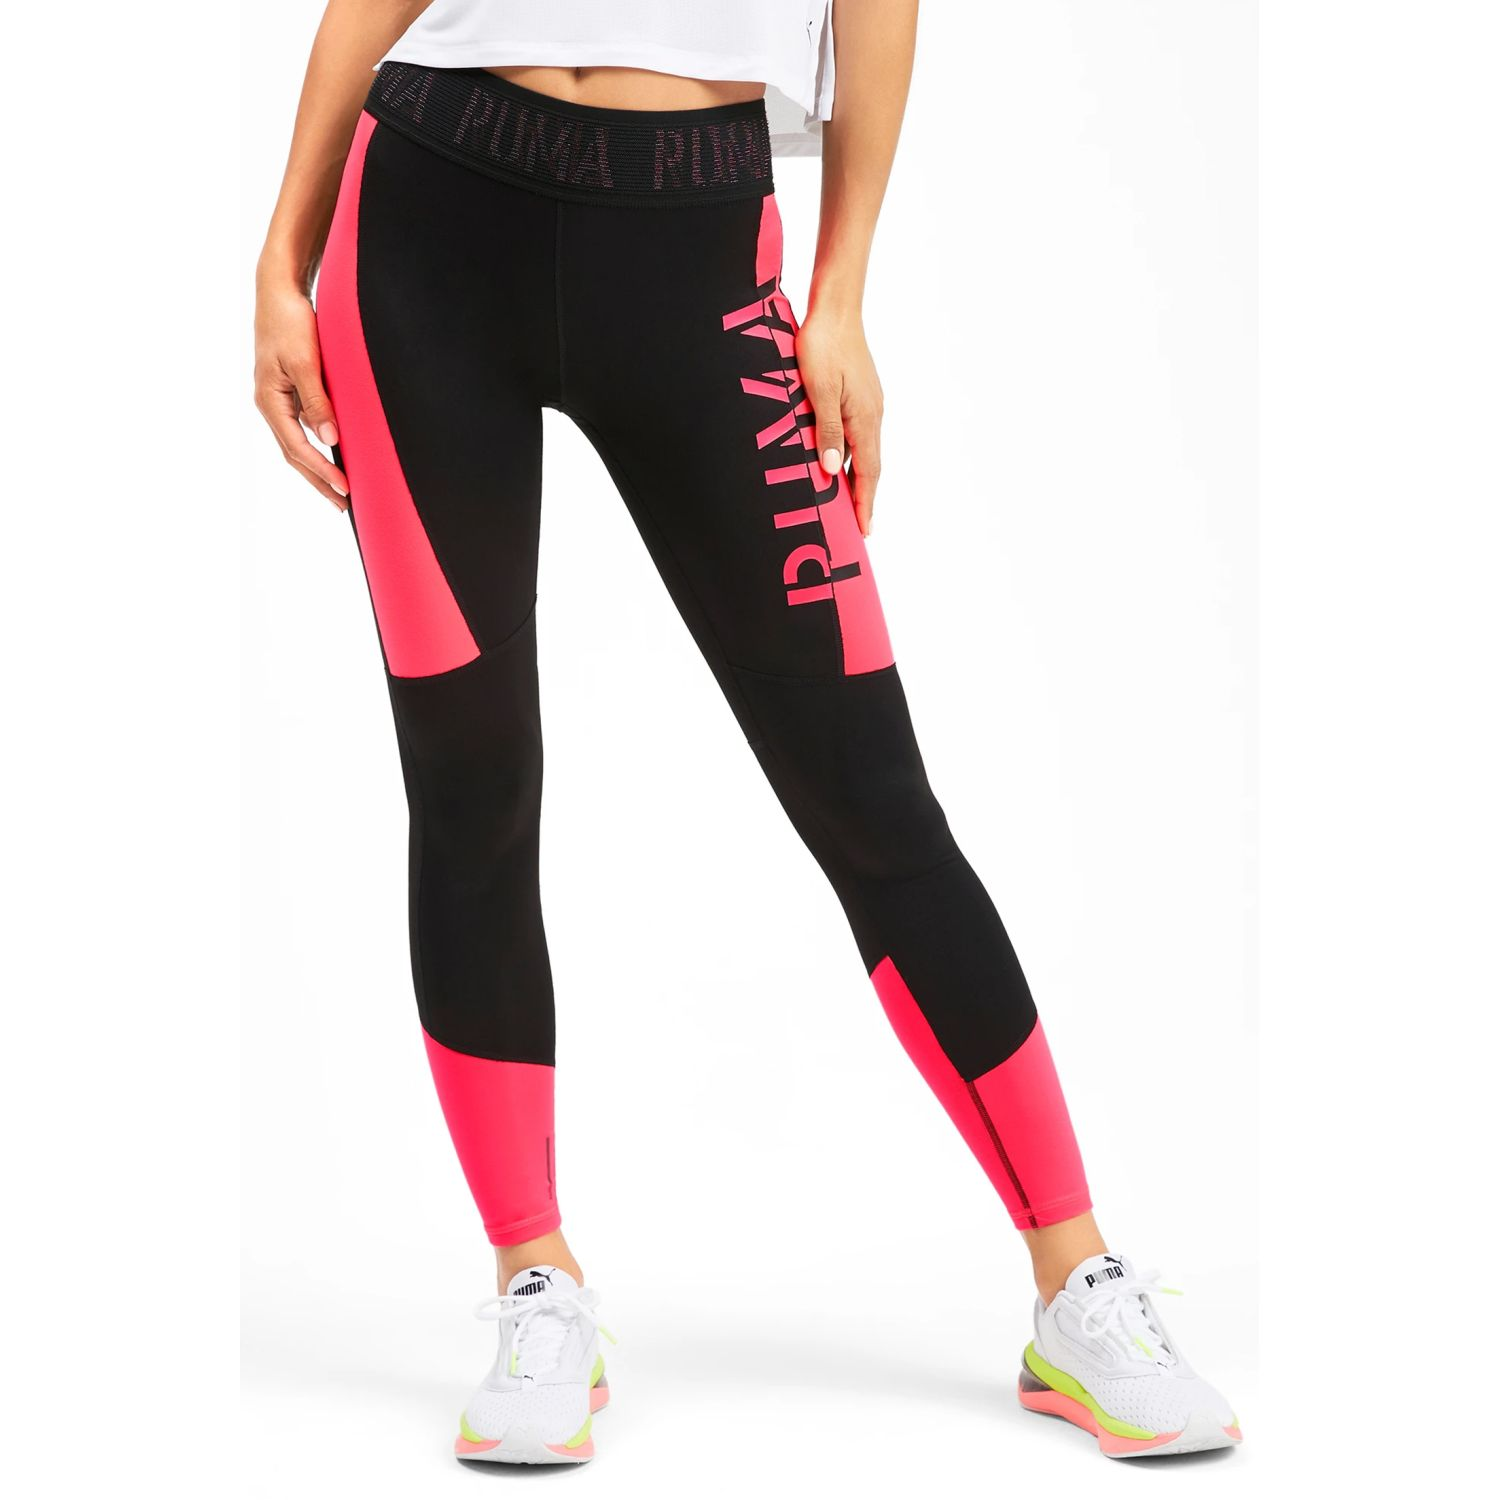 Puma logo 7/8 tight Negro / fucsia Leggings Deportivos